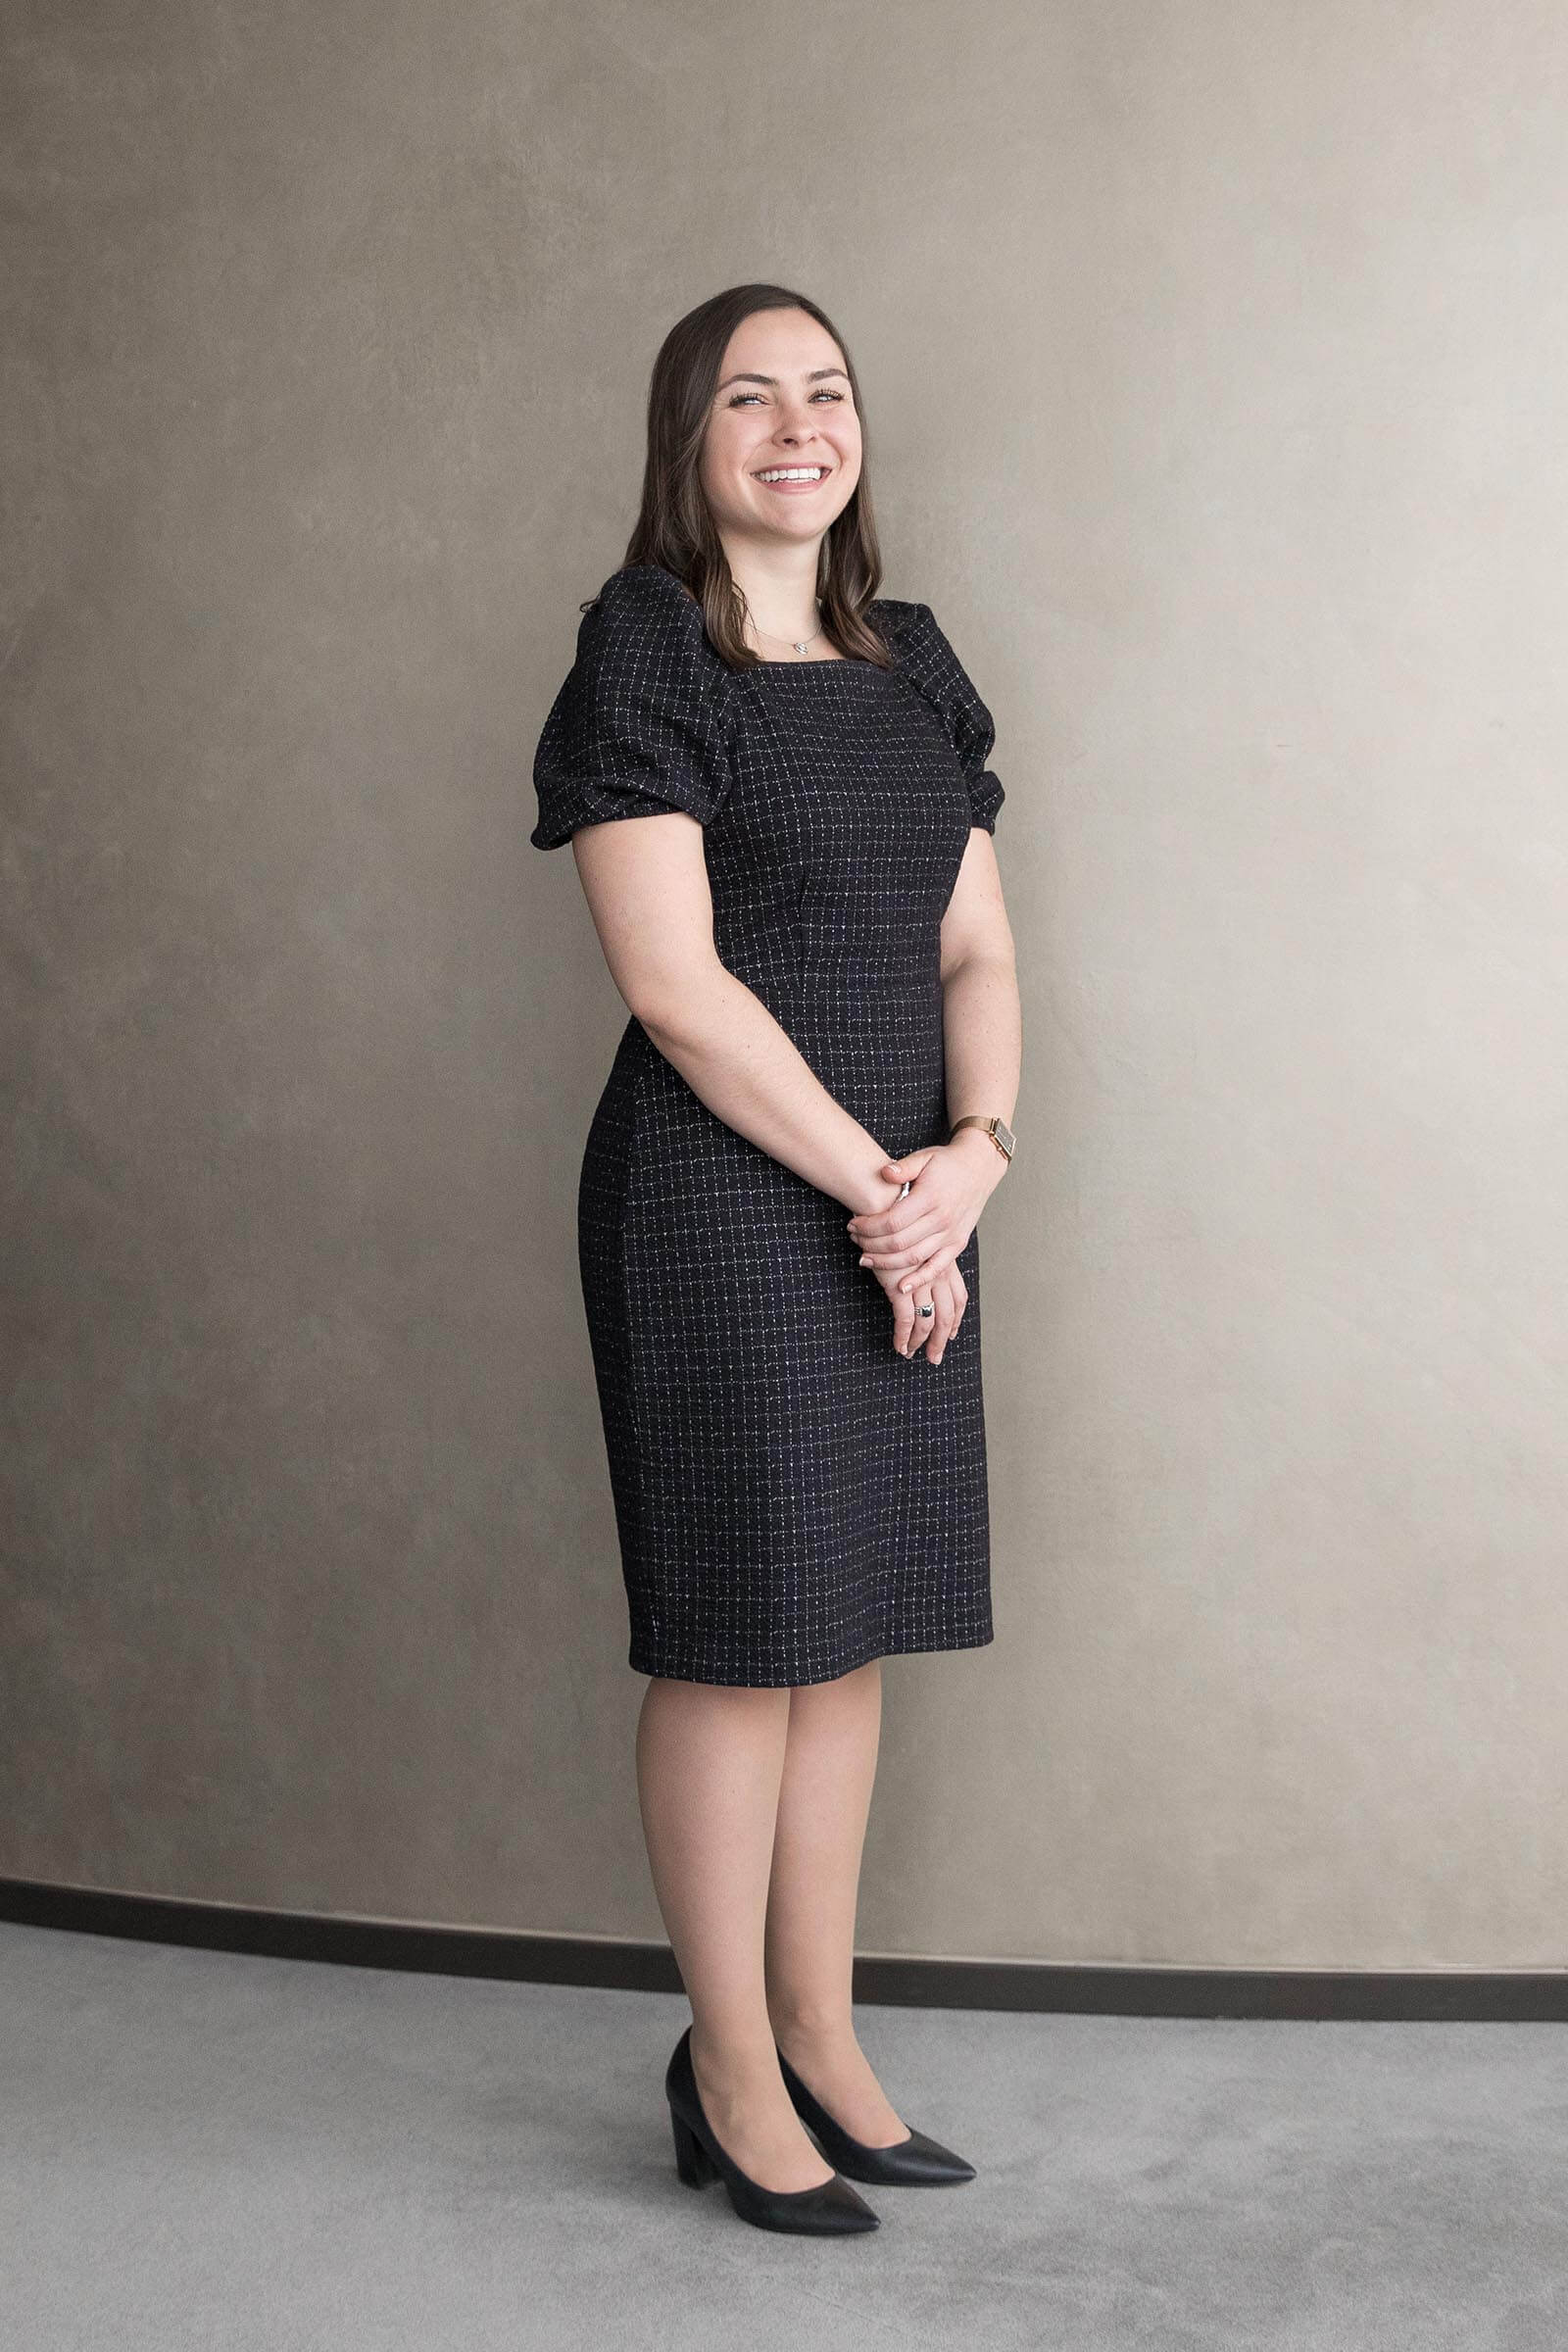 Katrina Bruhm - Analyst, 